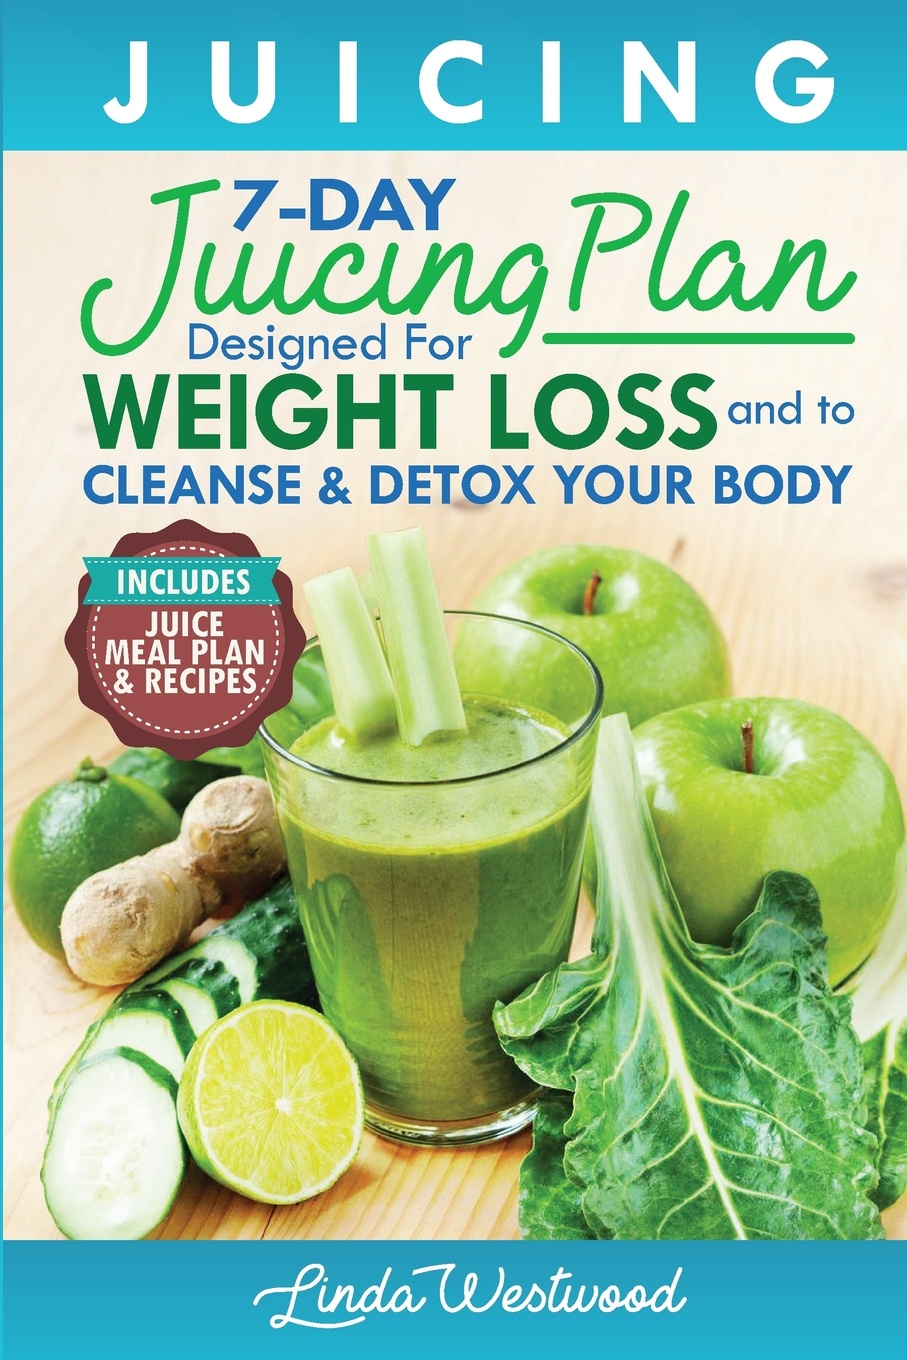 Фото - Linda Westwood Juicing (5th Edition). The 7-Day Juicing Plan Designed for Weight Loss and to Cleanse & Detox Your Body (Includes Juice Meal Plan & Recipes) pat crocker juicing and smoothies for dummies